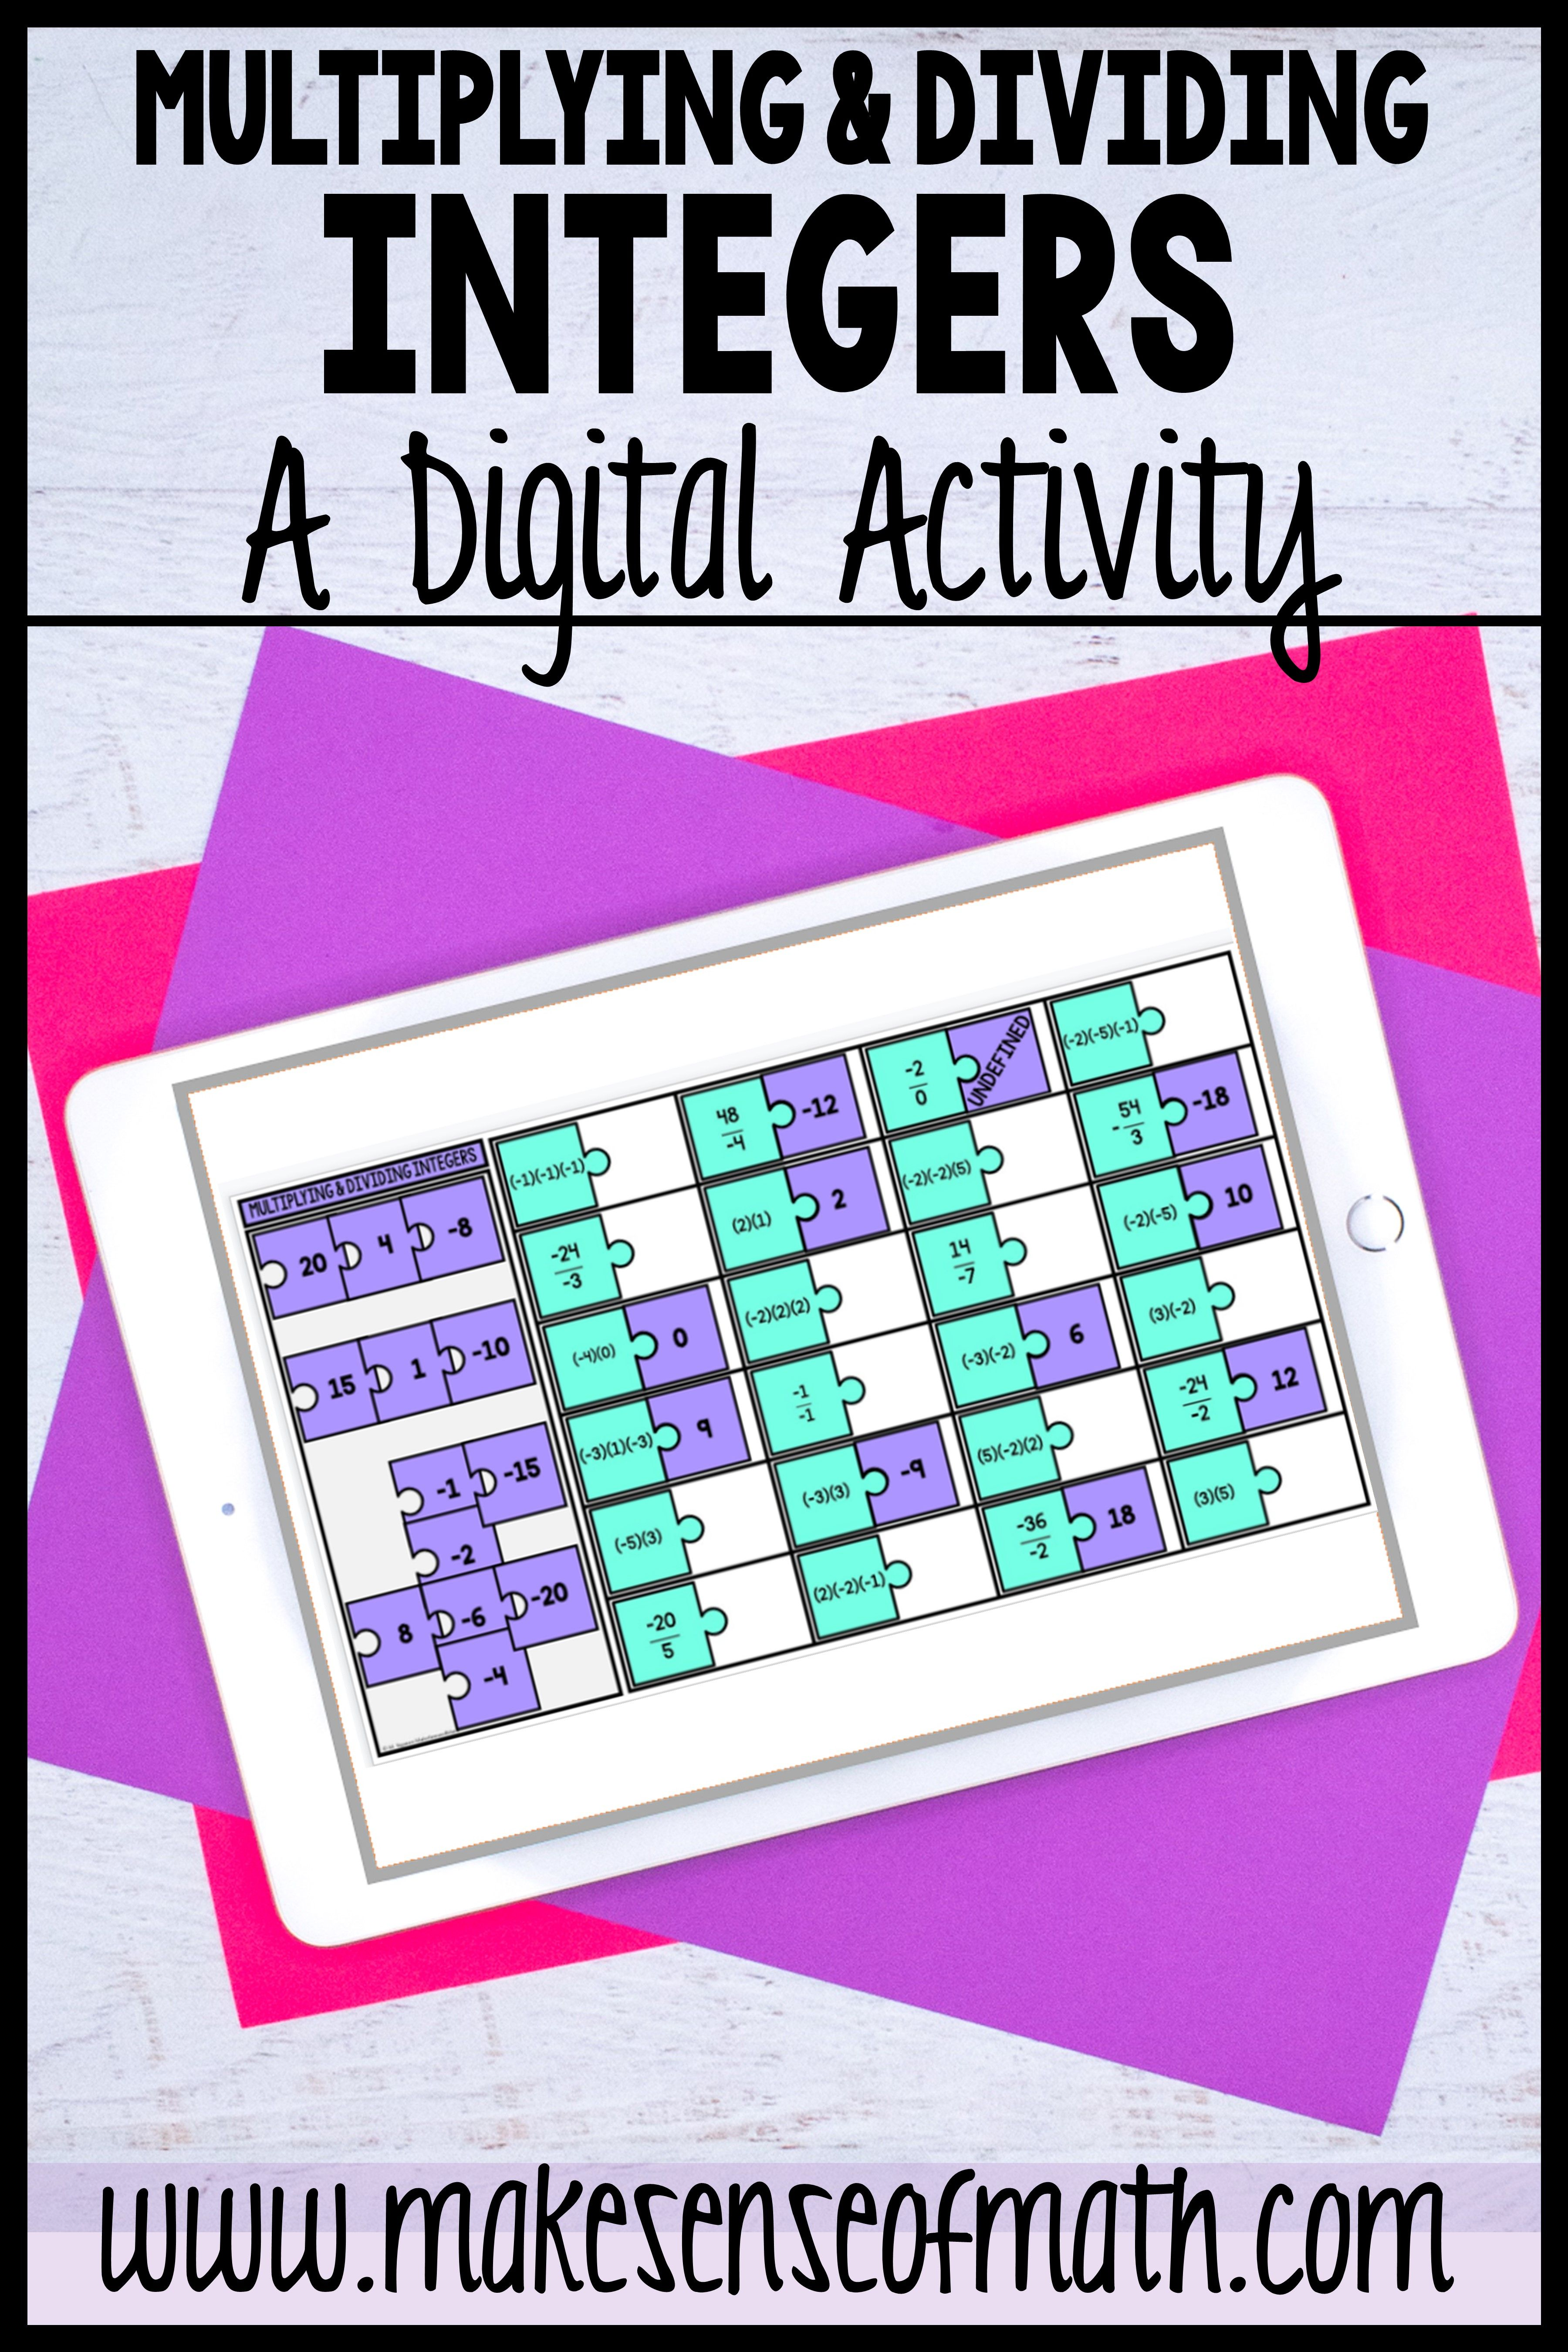 Multiplying And Dividing Integers Digital Activity In